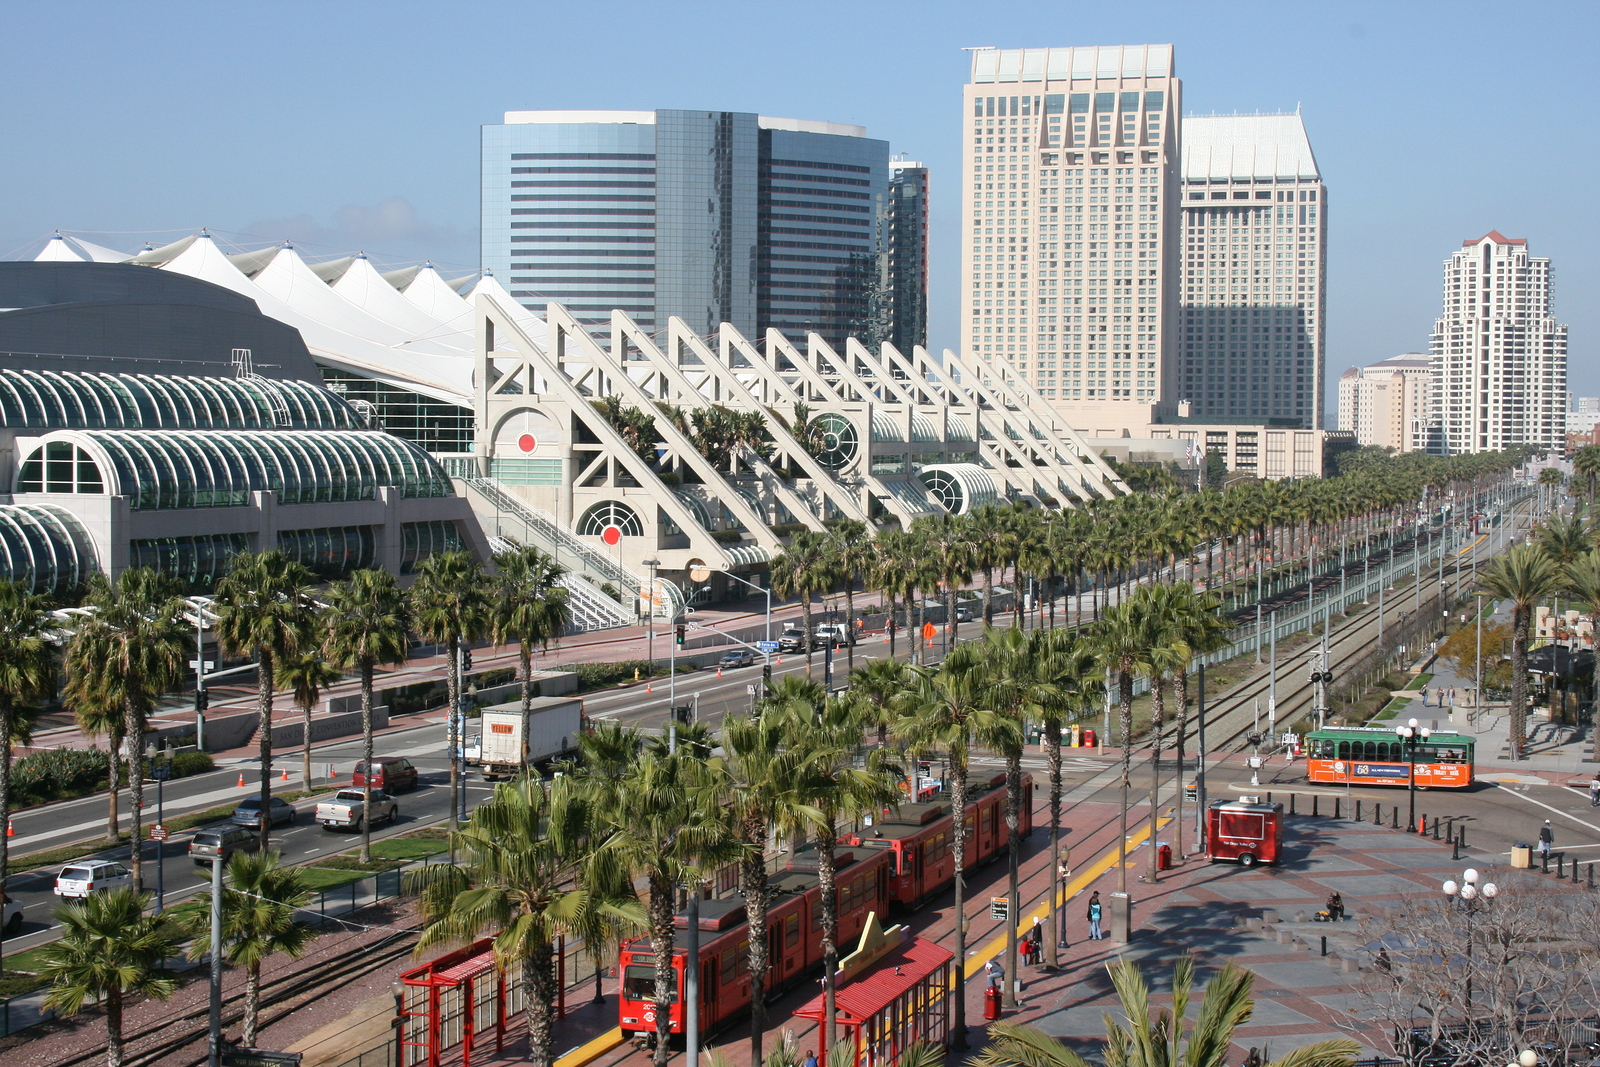 Downtown San Diego, with a view of the convention center. The city is set to launch an ambitious $30 million smart city project to outfit 3,200 streetlights with a buffet of sensors. (SHUTTERSTOCK)